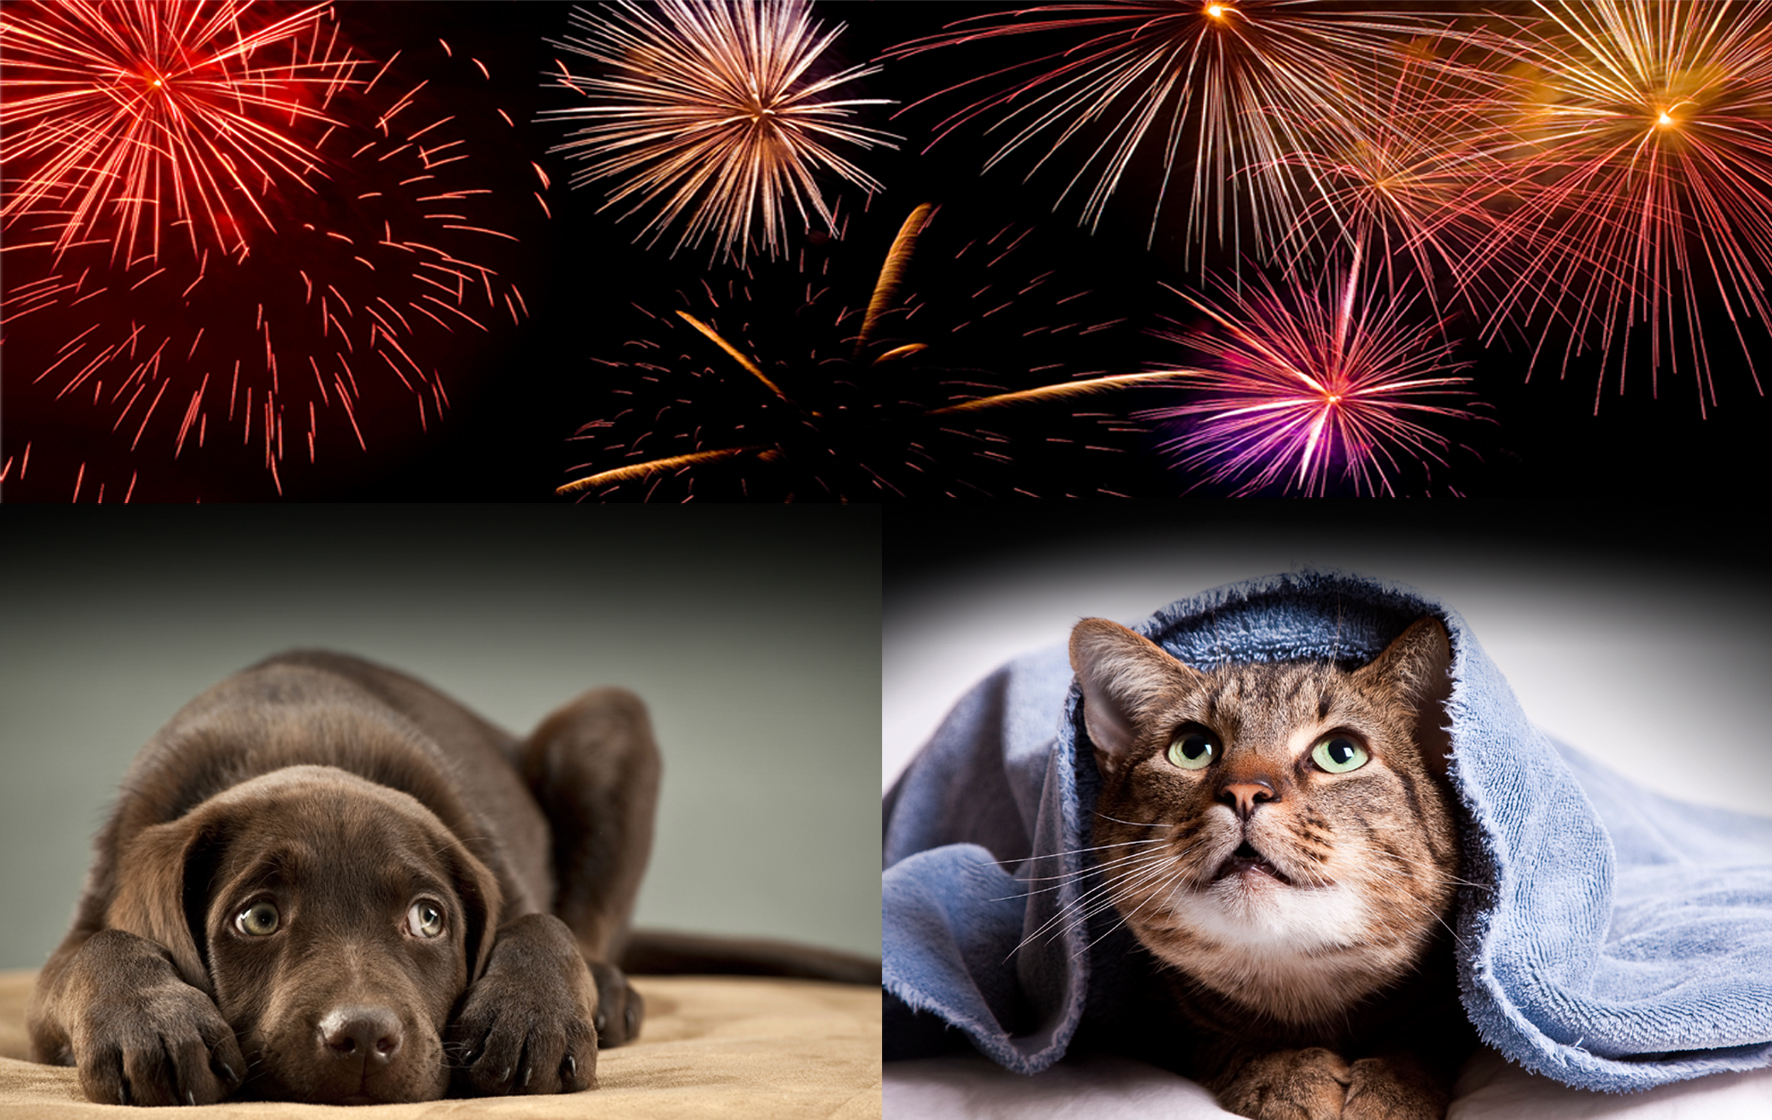 cat-dog-fireworks.jpg